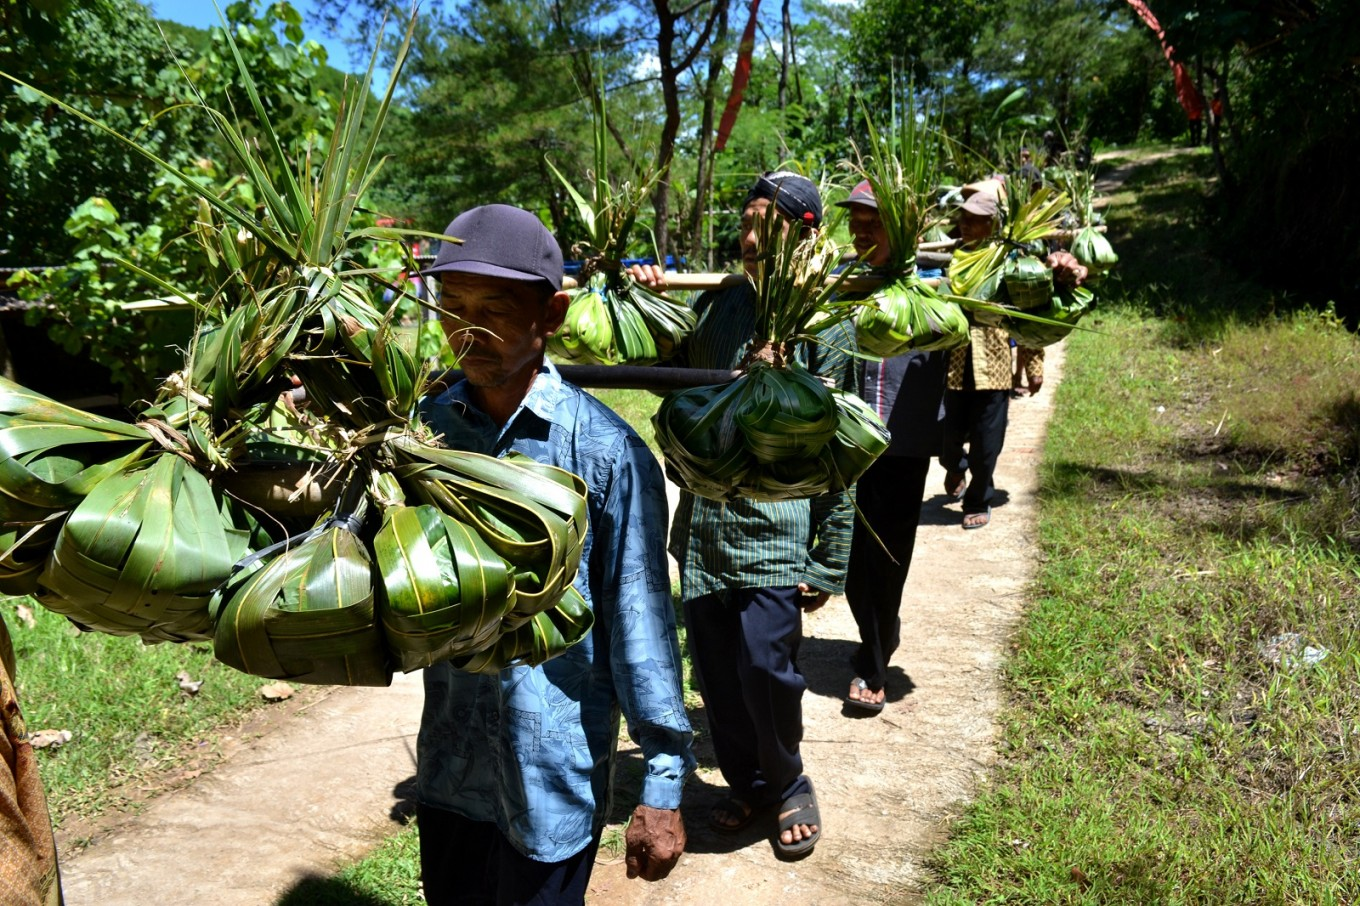 Jepitu villagers carry a variety of dishes wrapped in palm leaves for a communal feast during the 'Sedekah Laut Ngalangi' thanksgiving ceremony.